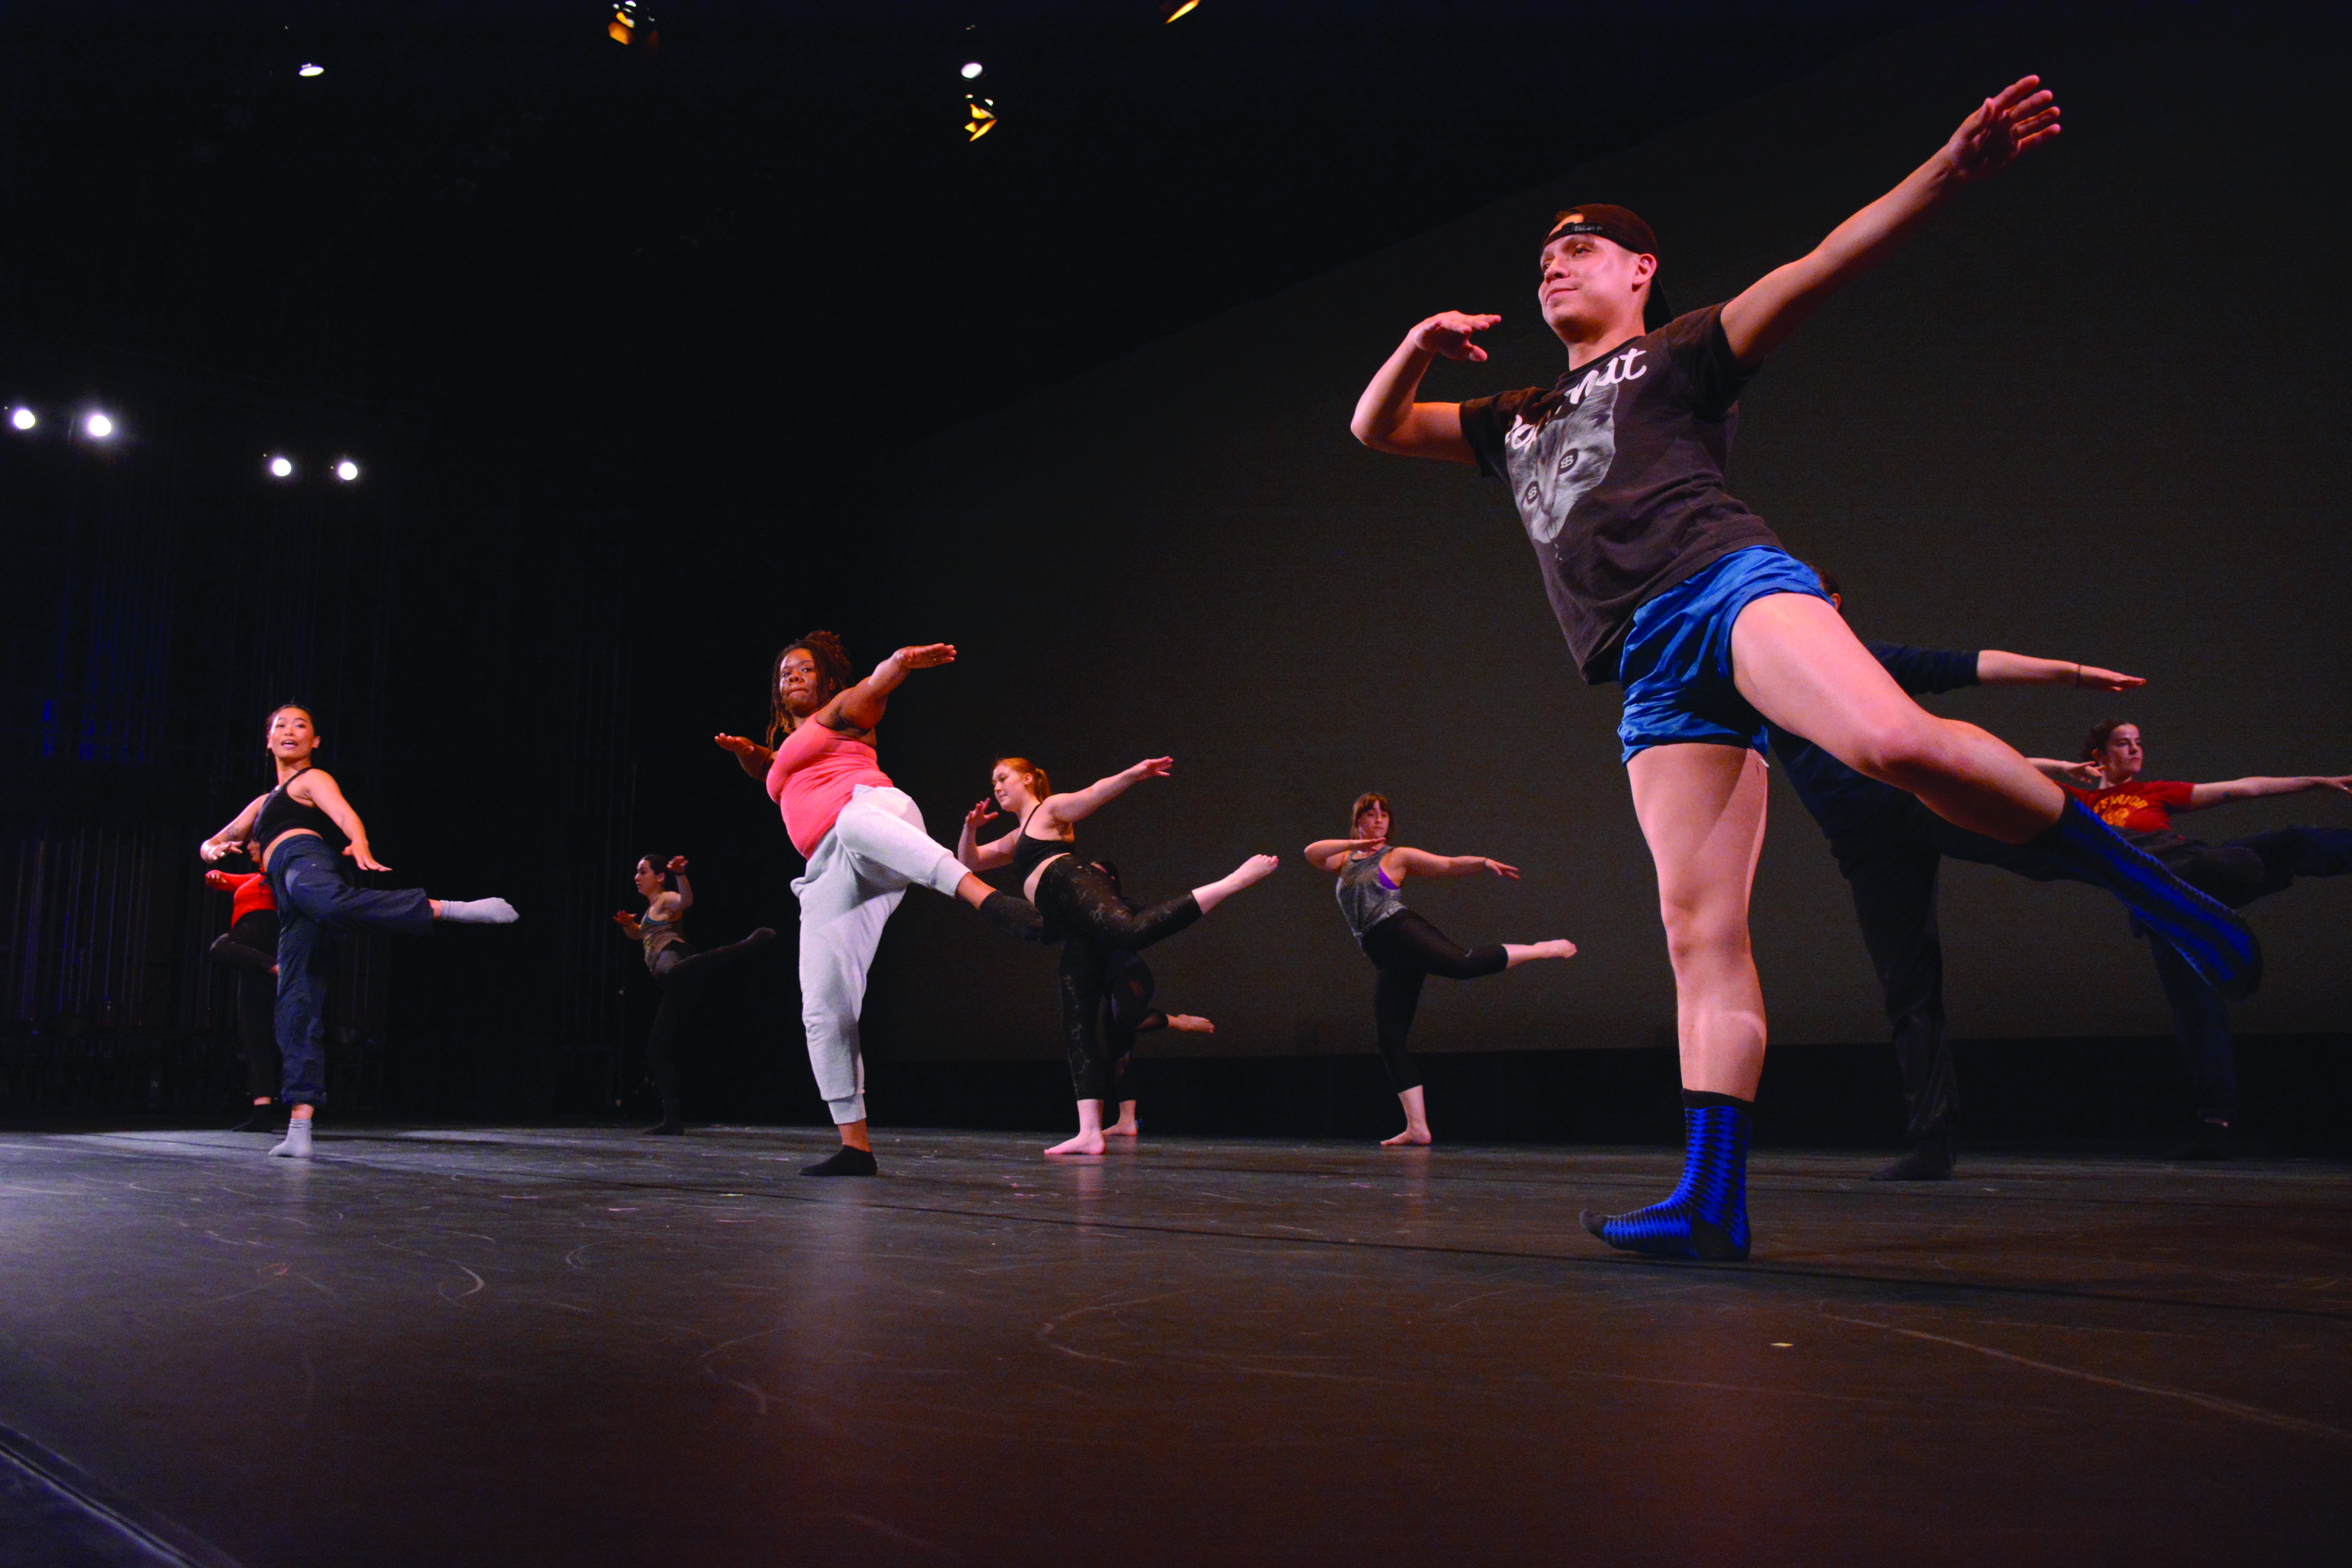 University Dance Theatre goes through a dance to warm up before its opening night on Thursday, April 4th at the Mckenna Theatre. (TRISTENROWEAN/ Golden Gate Xpress)